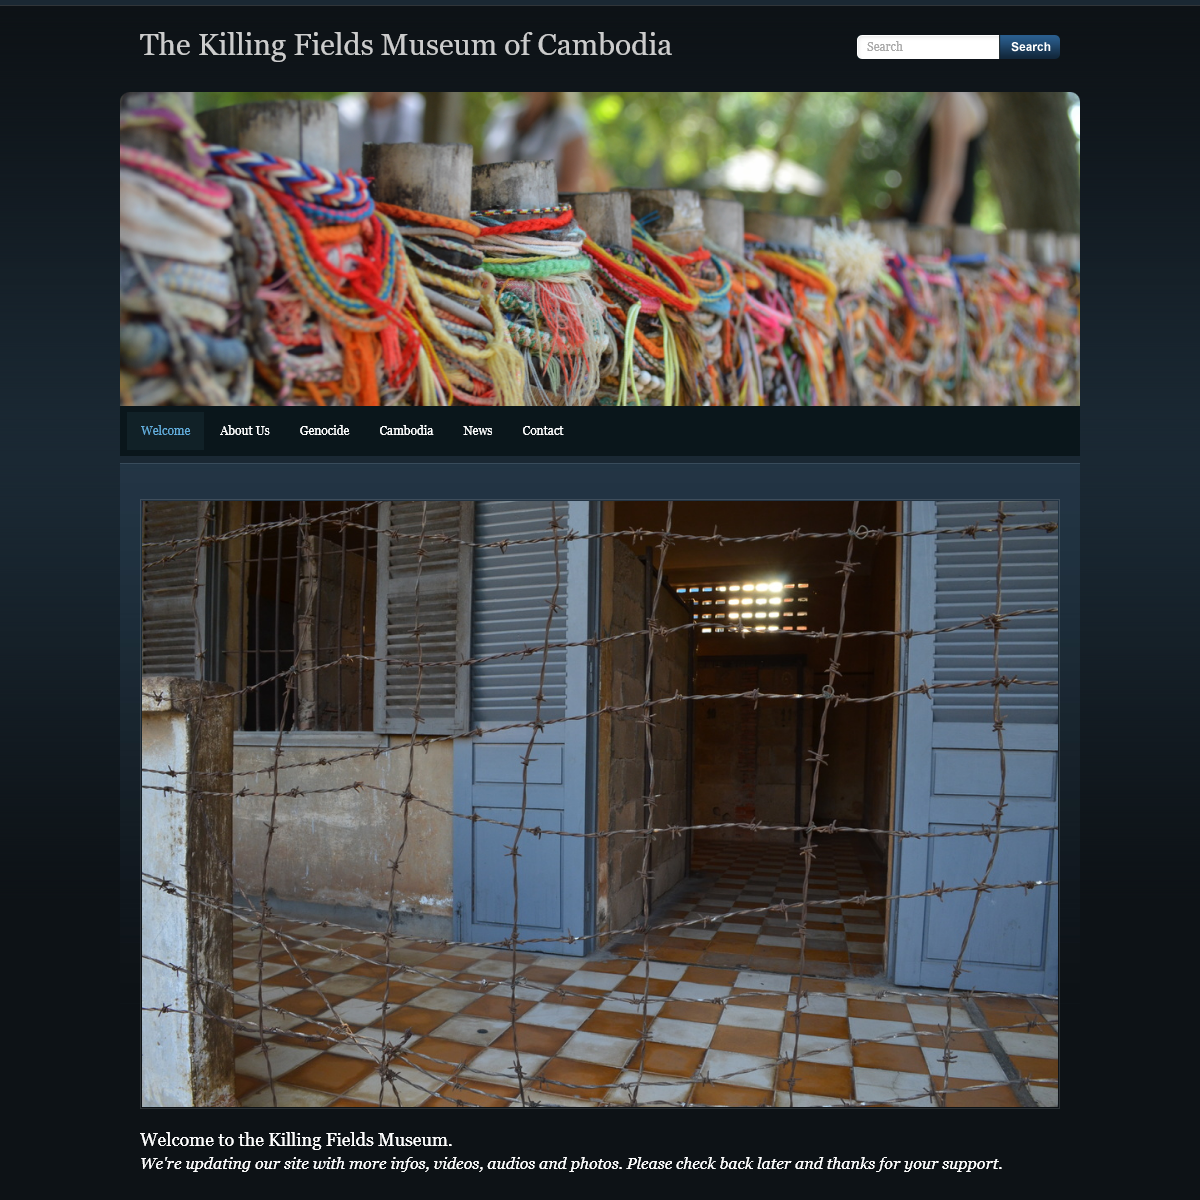 The Killing Fields Museum of Cambodia - Welcome